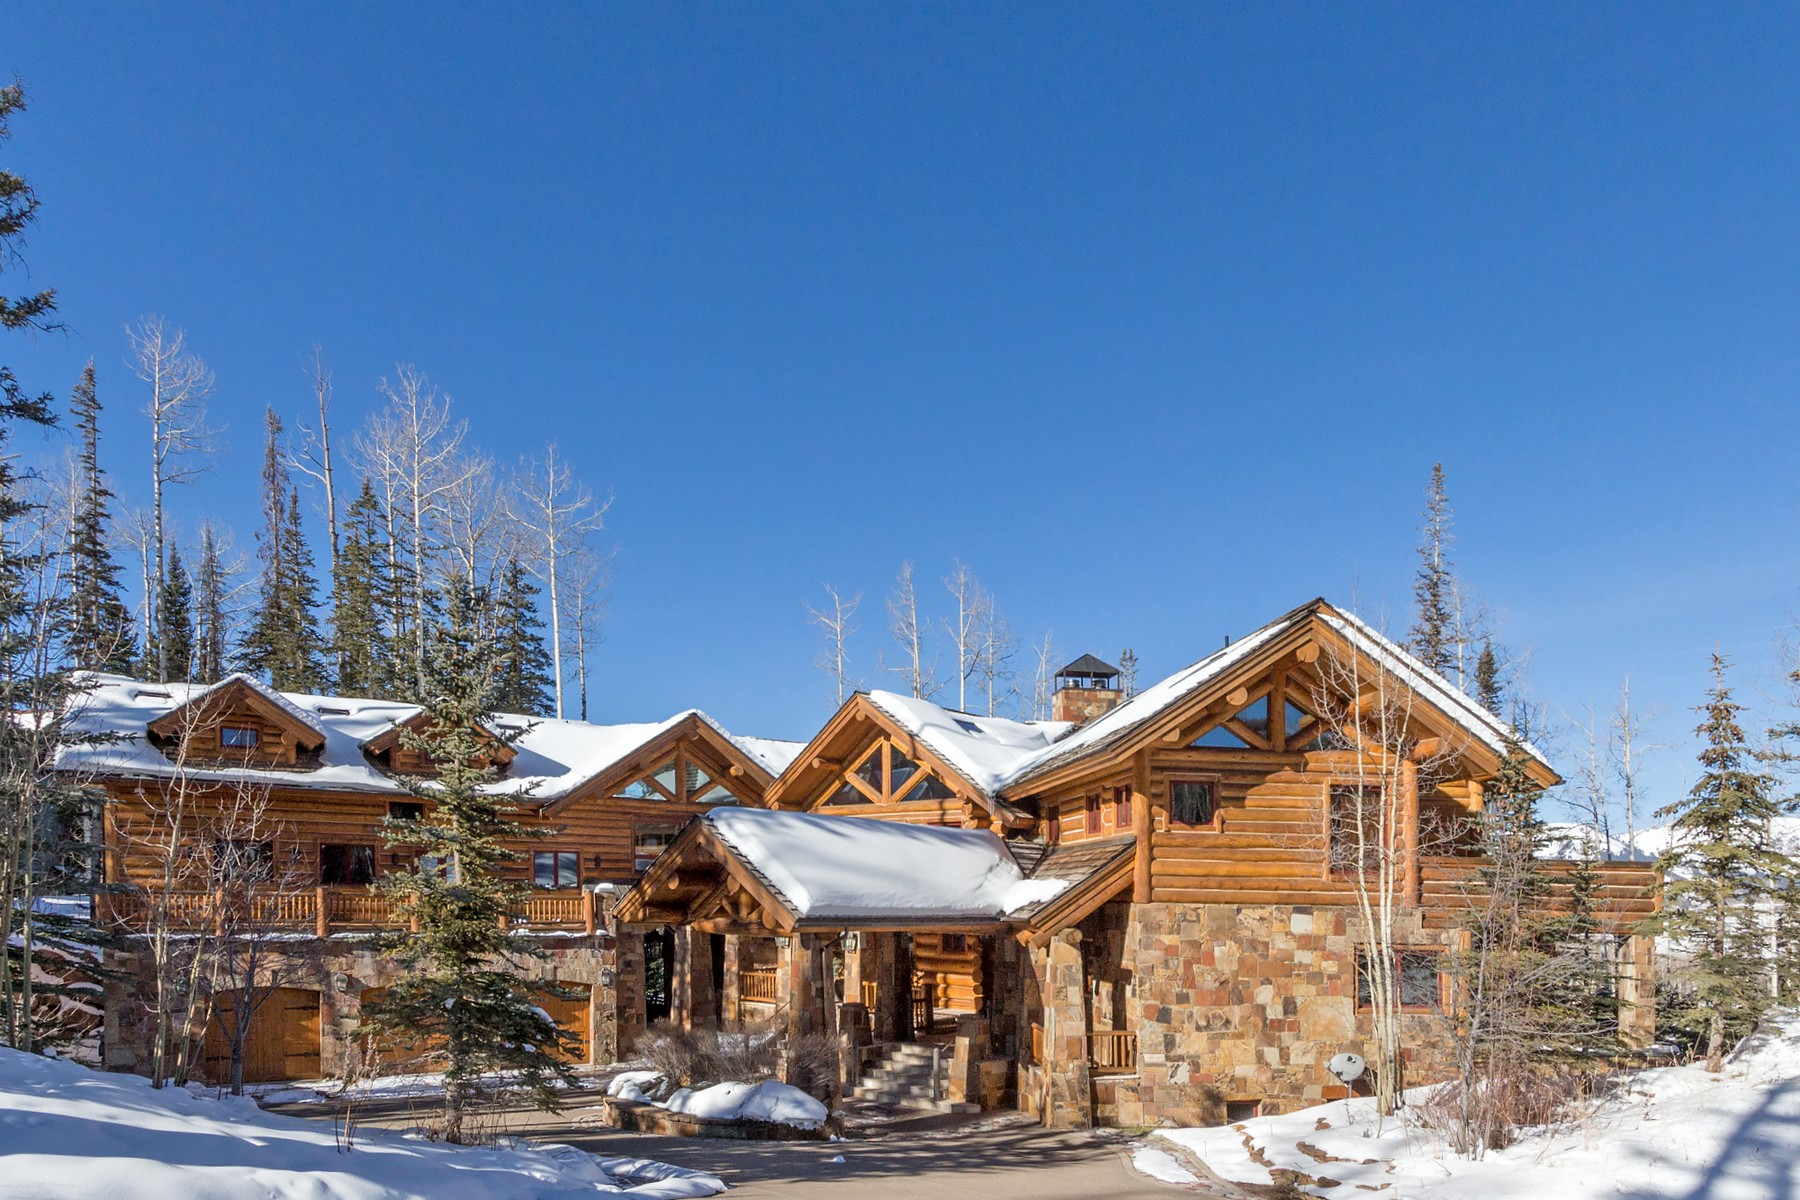 Single Family Home for Active at 133 Polecat Lane Telluride, 81435 United States